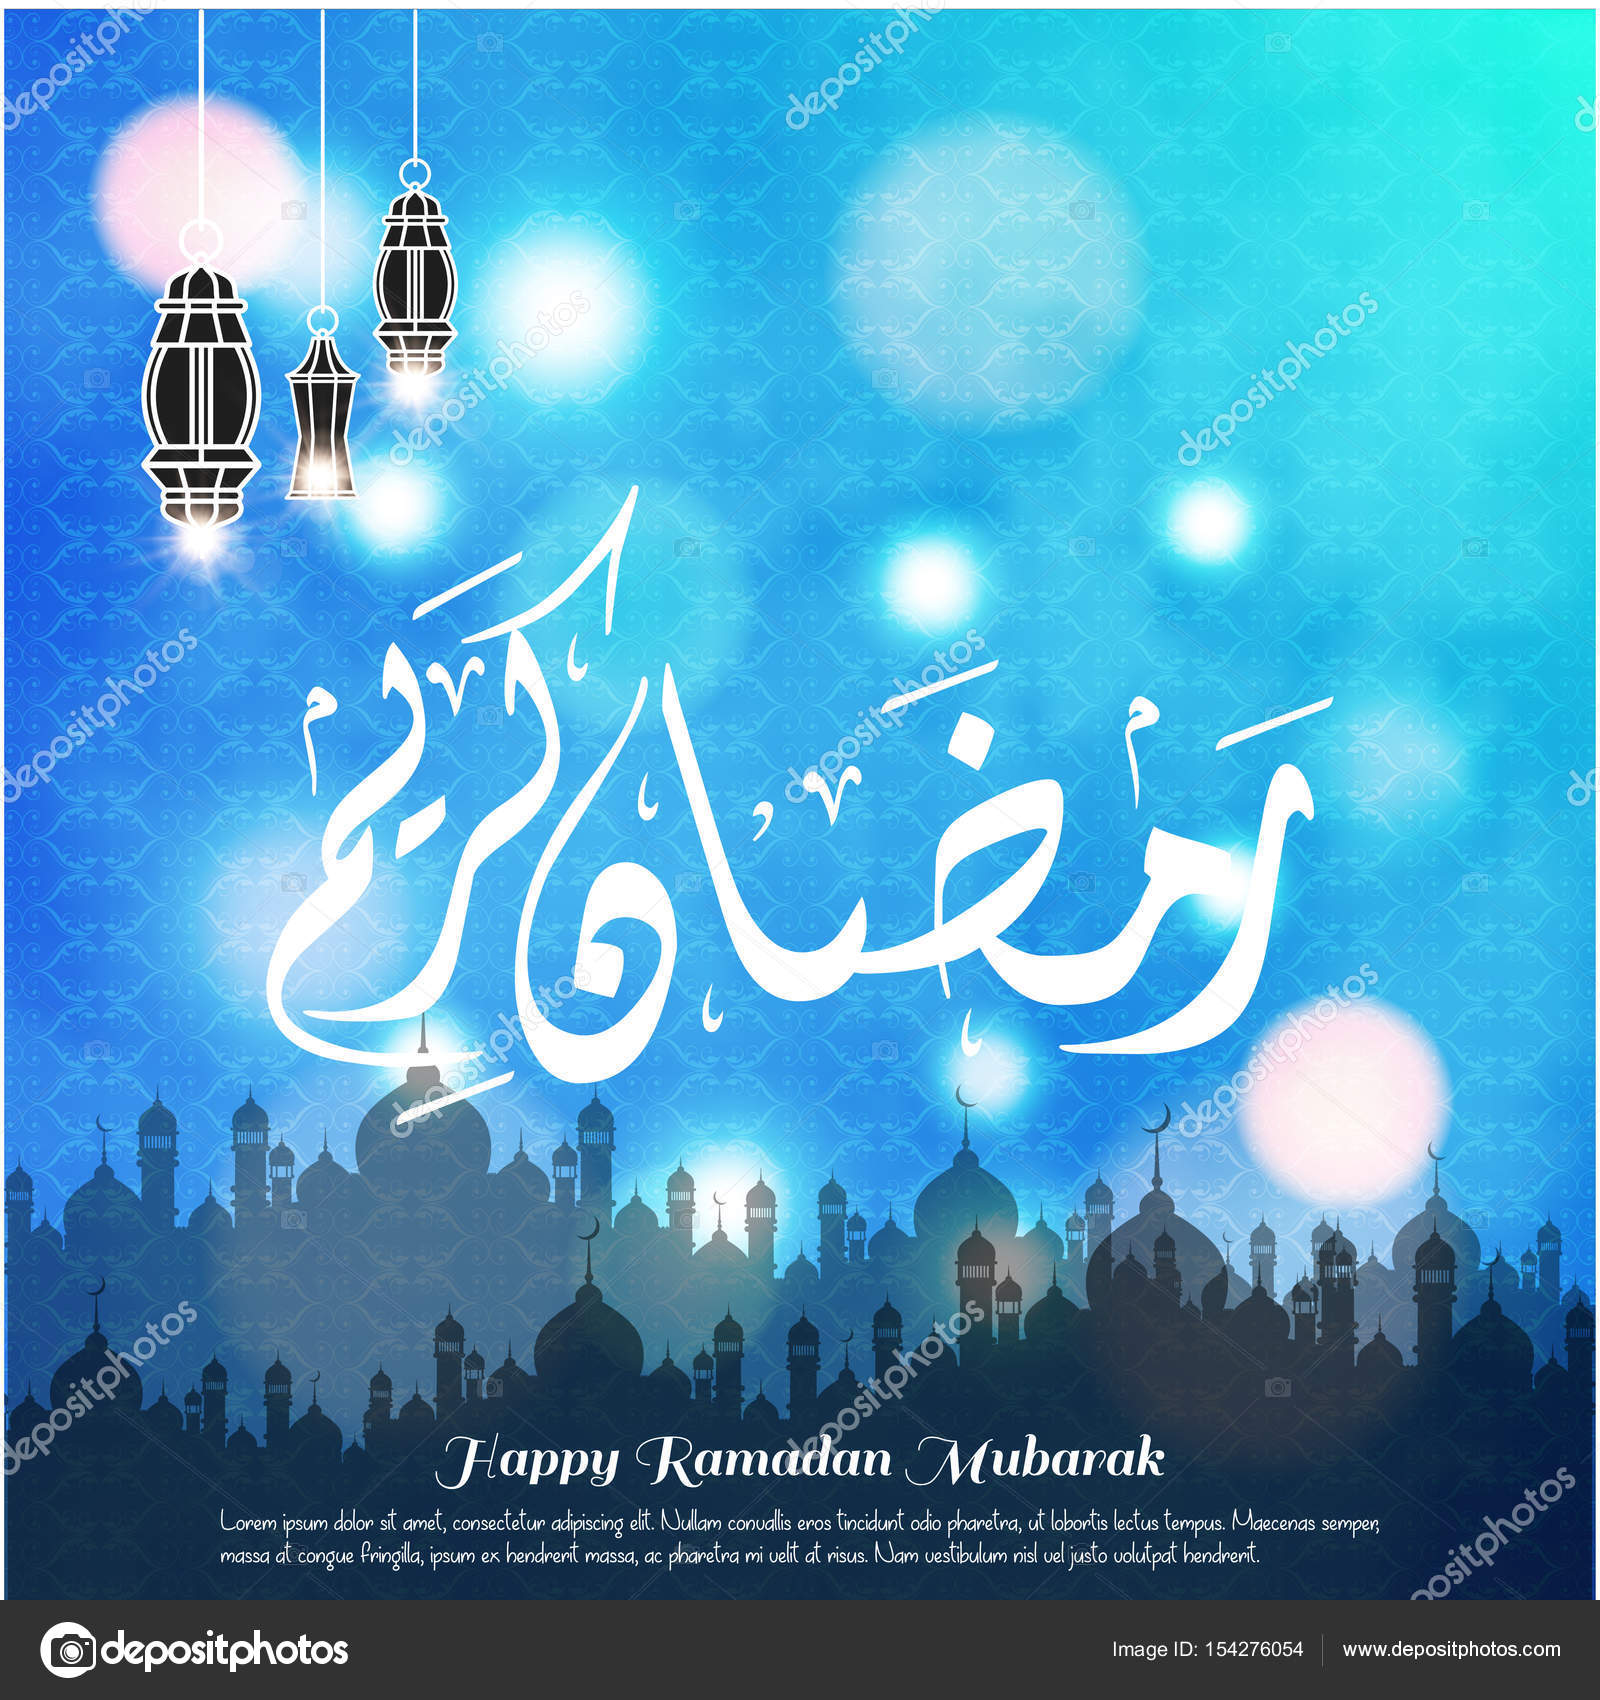 Ramadan mubarak greeting card stock vector ibrandify 154276054 ramadan mubarak greeting card stock vector m4hsunfo